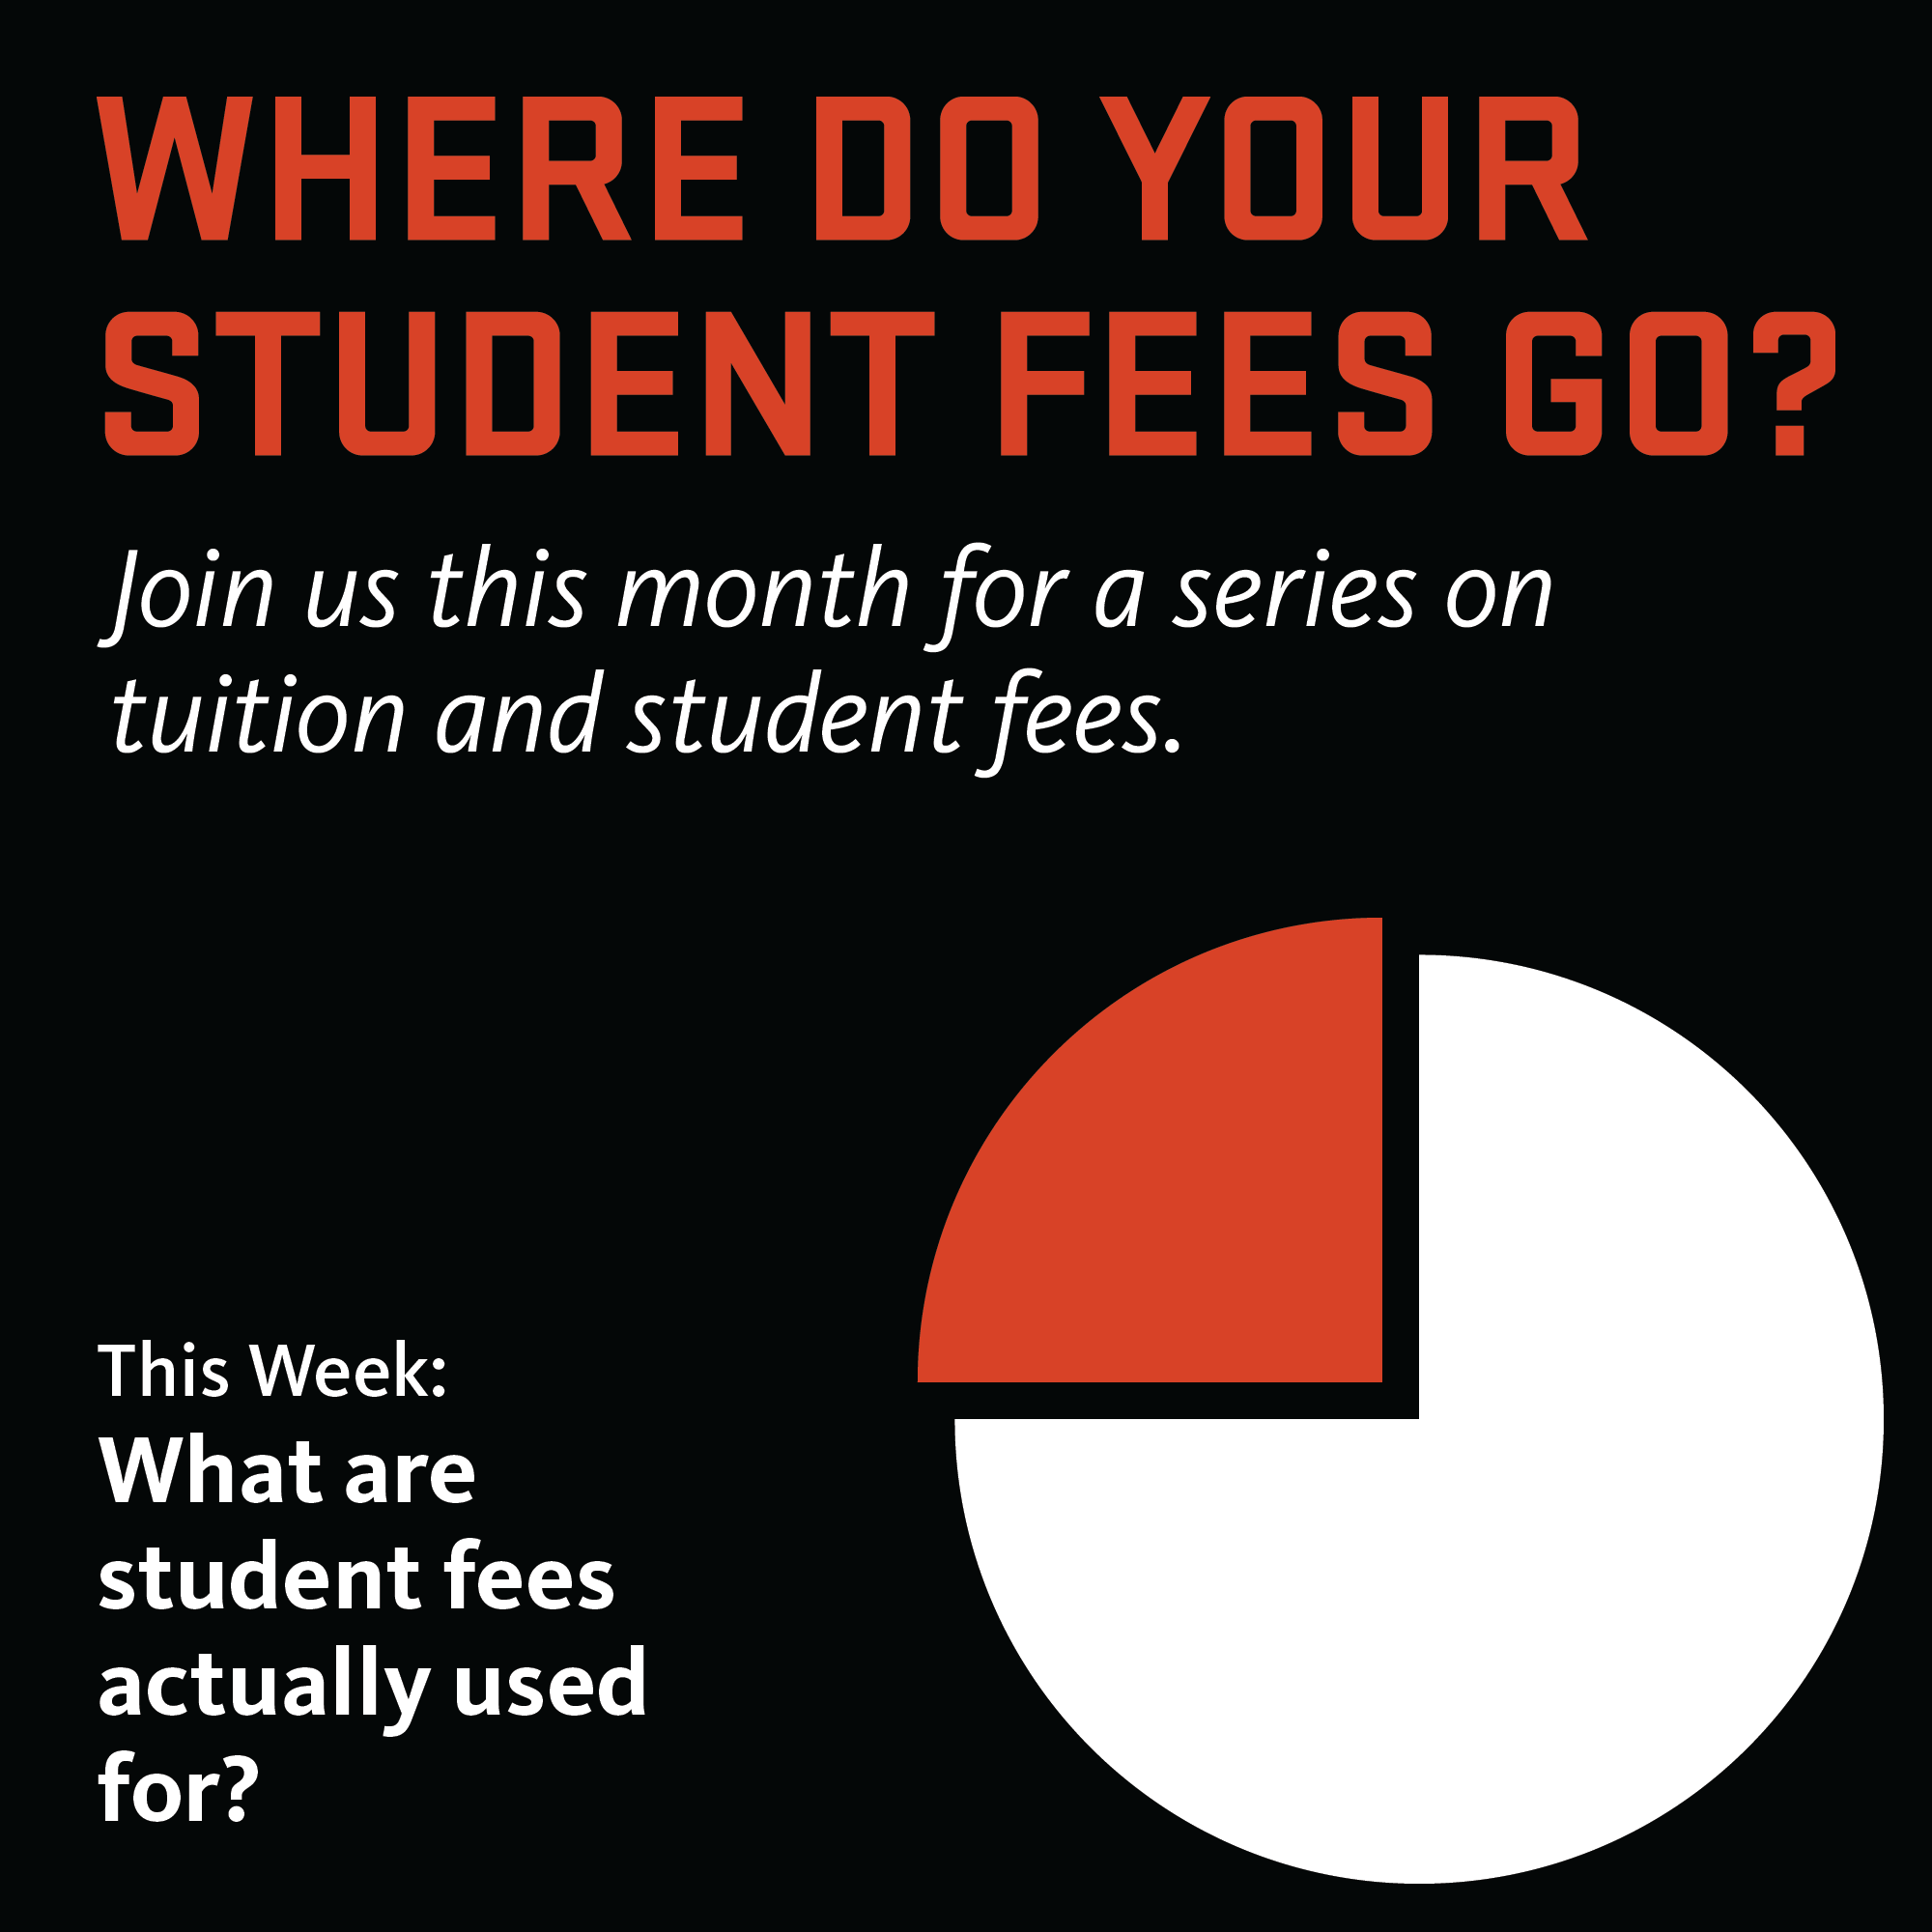 What Are Your Student Fees Used For?